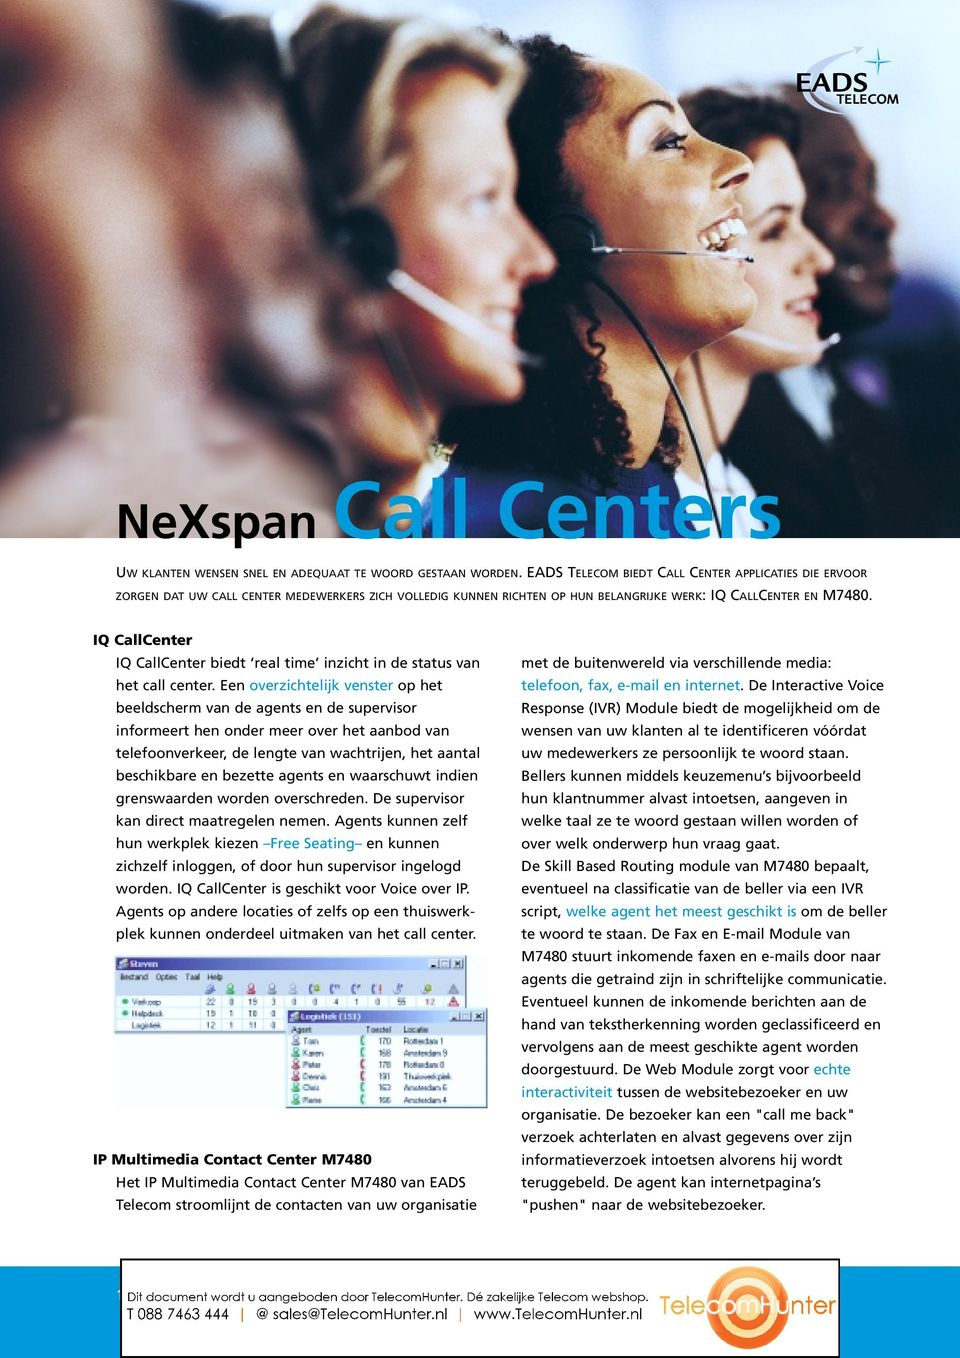 IQ CallCenter IQ CallCenter biedt real time inzicht in de status van het call center.